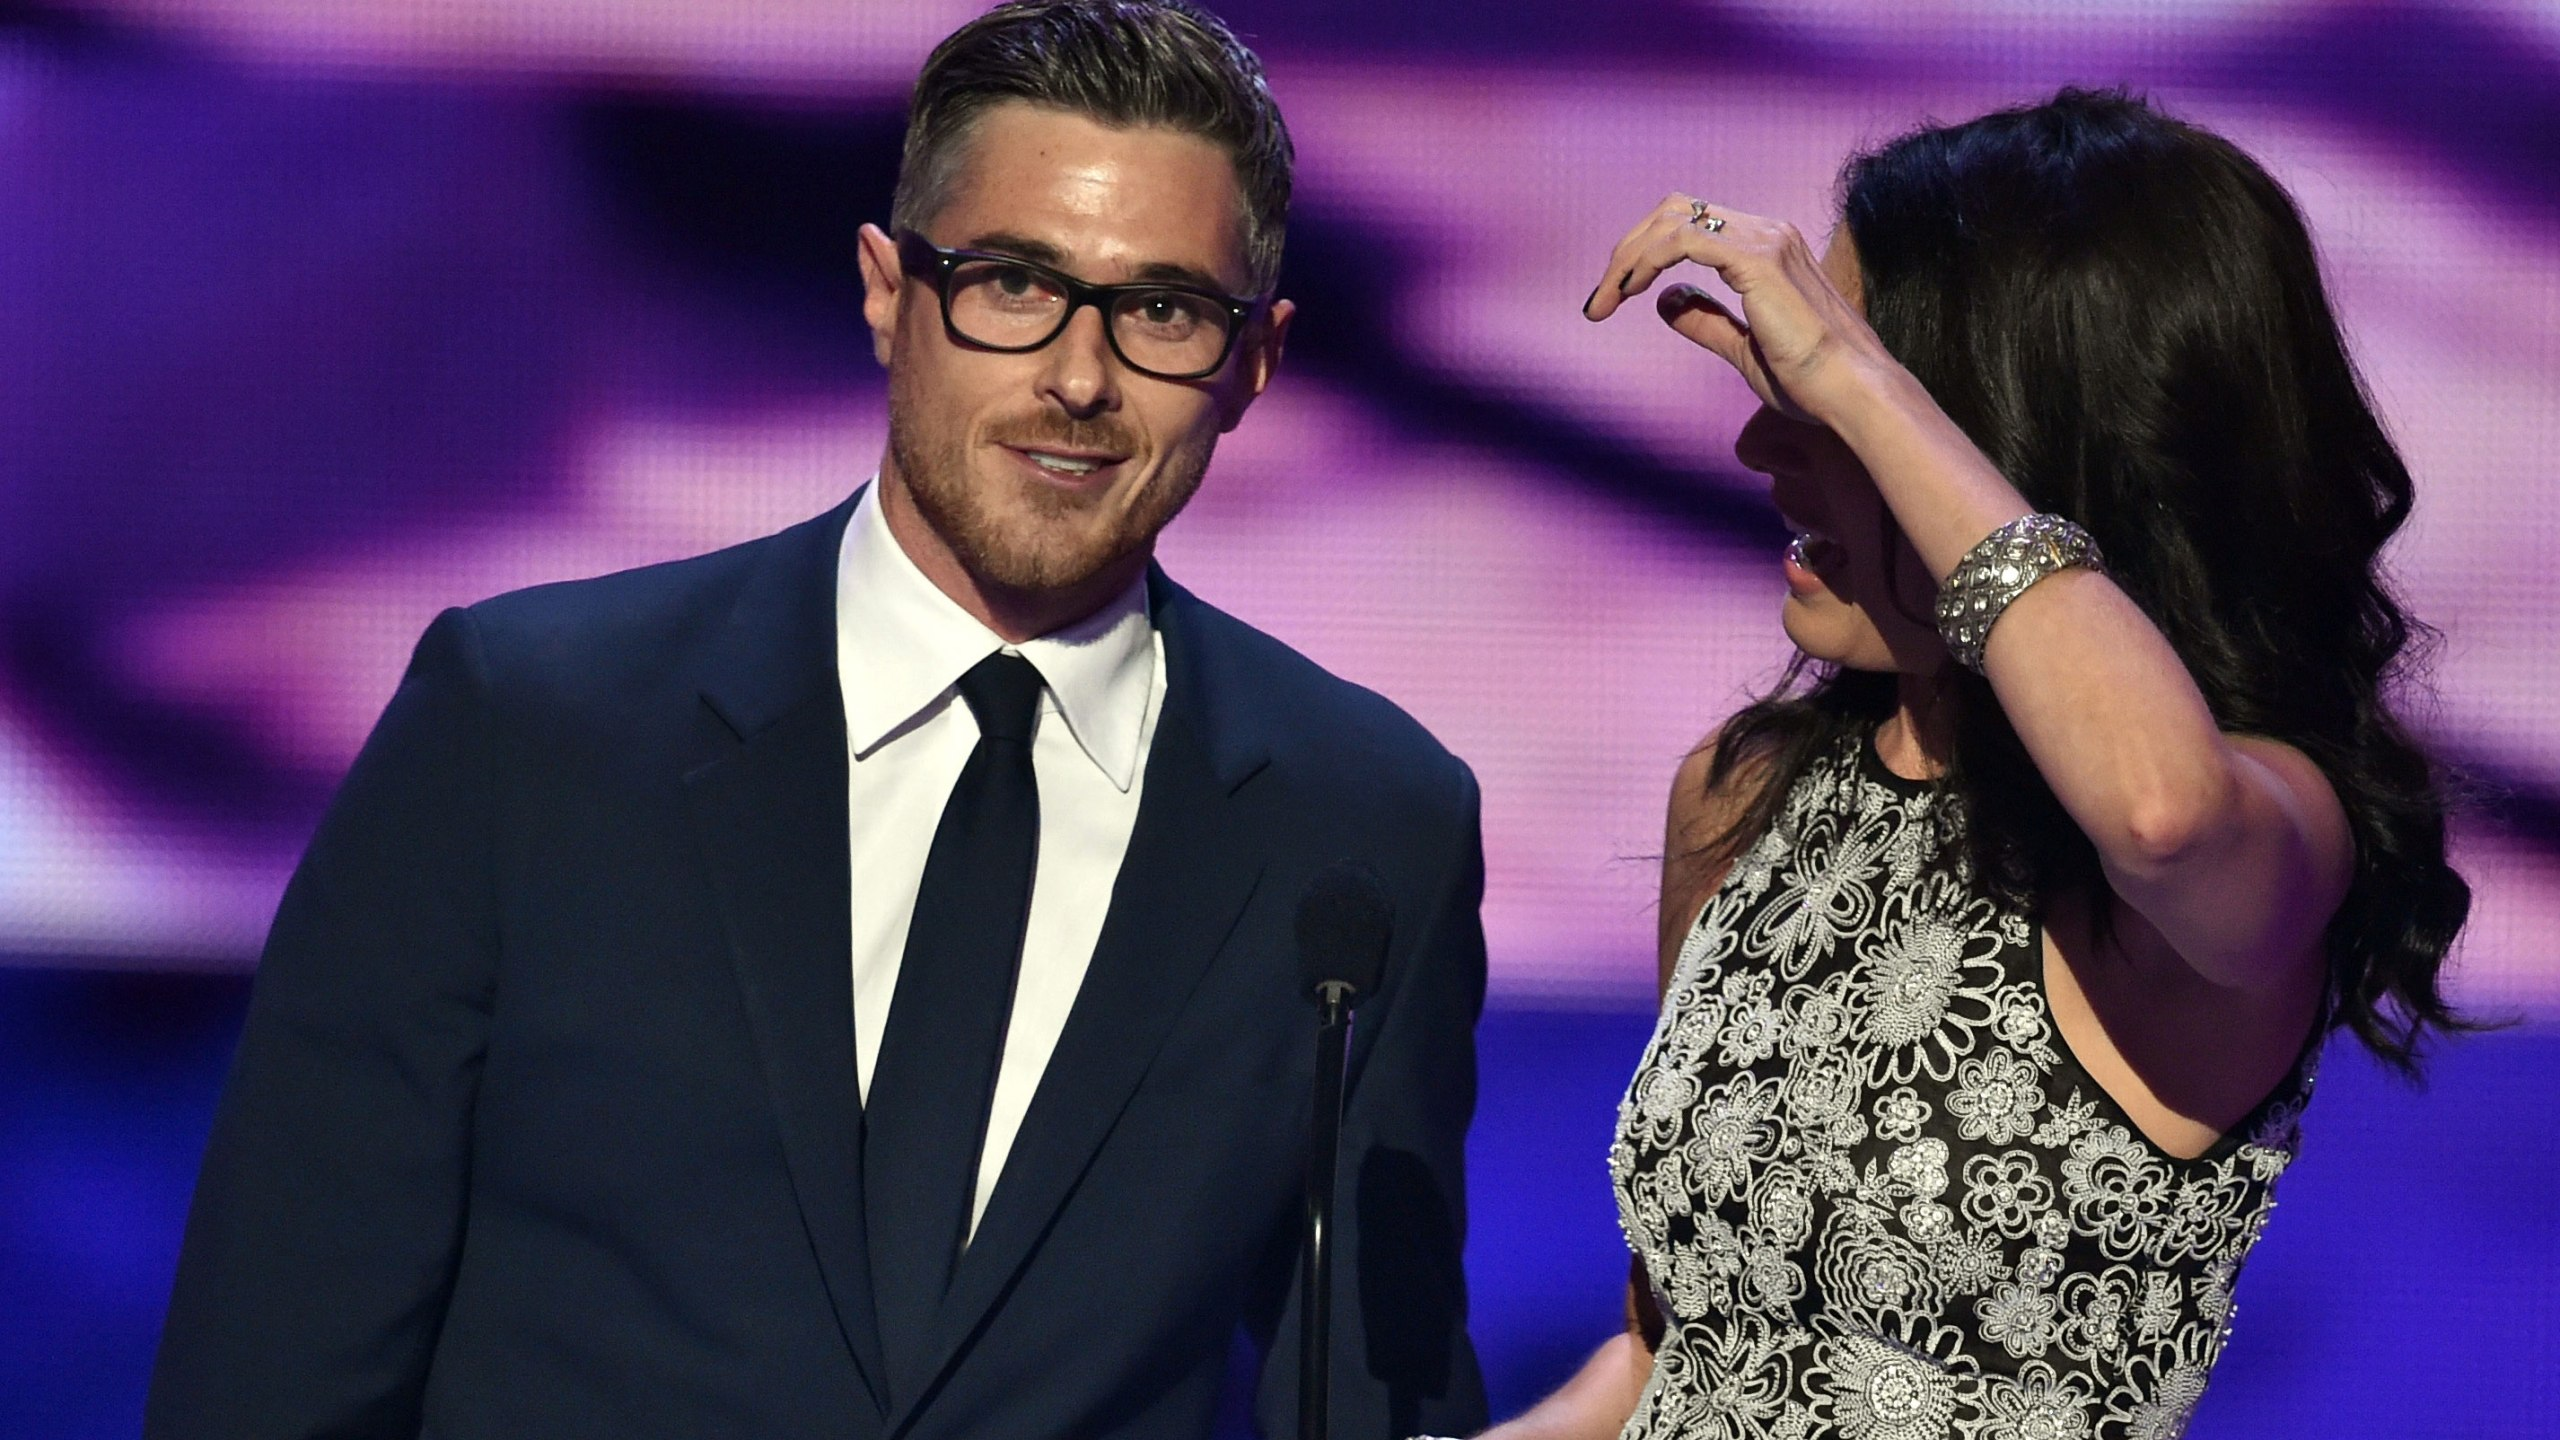 Actors Dave Annable (L) and Lisa Edelstein speak onstage at The 41st Annual People's Choice Awards at Nokia Theatre LA Live on January 7, 2015 in Los Angeles, California. (Photo: Kevin Winter/Getty Images)